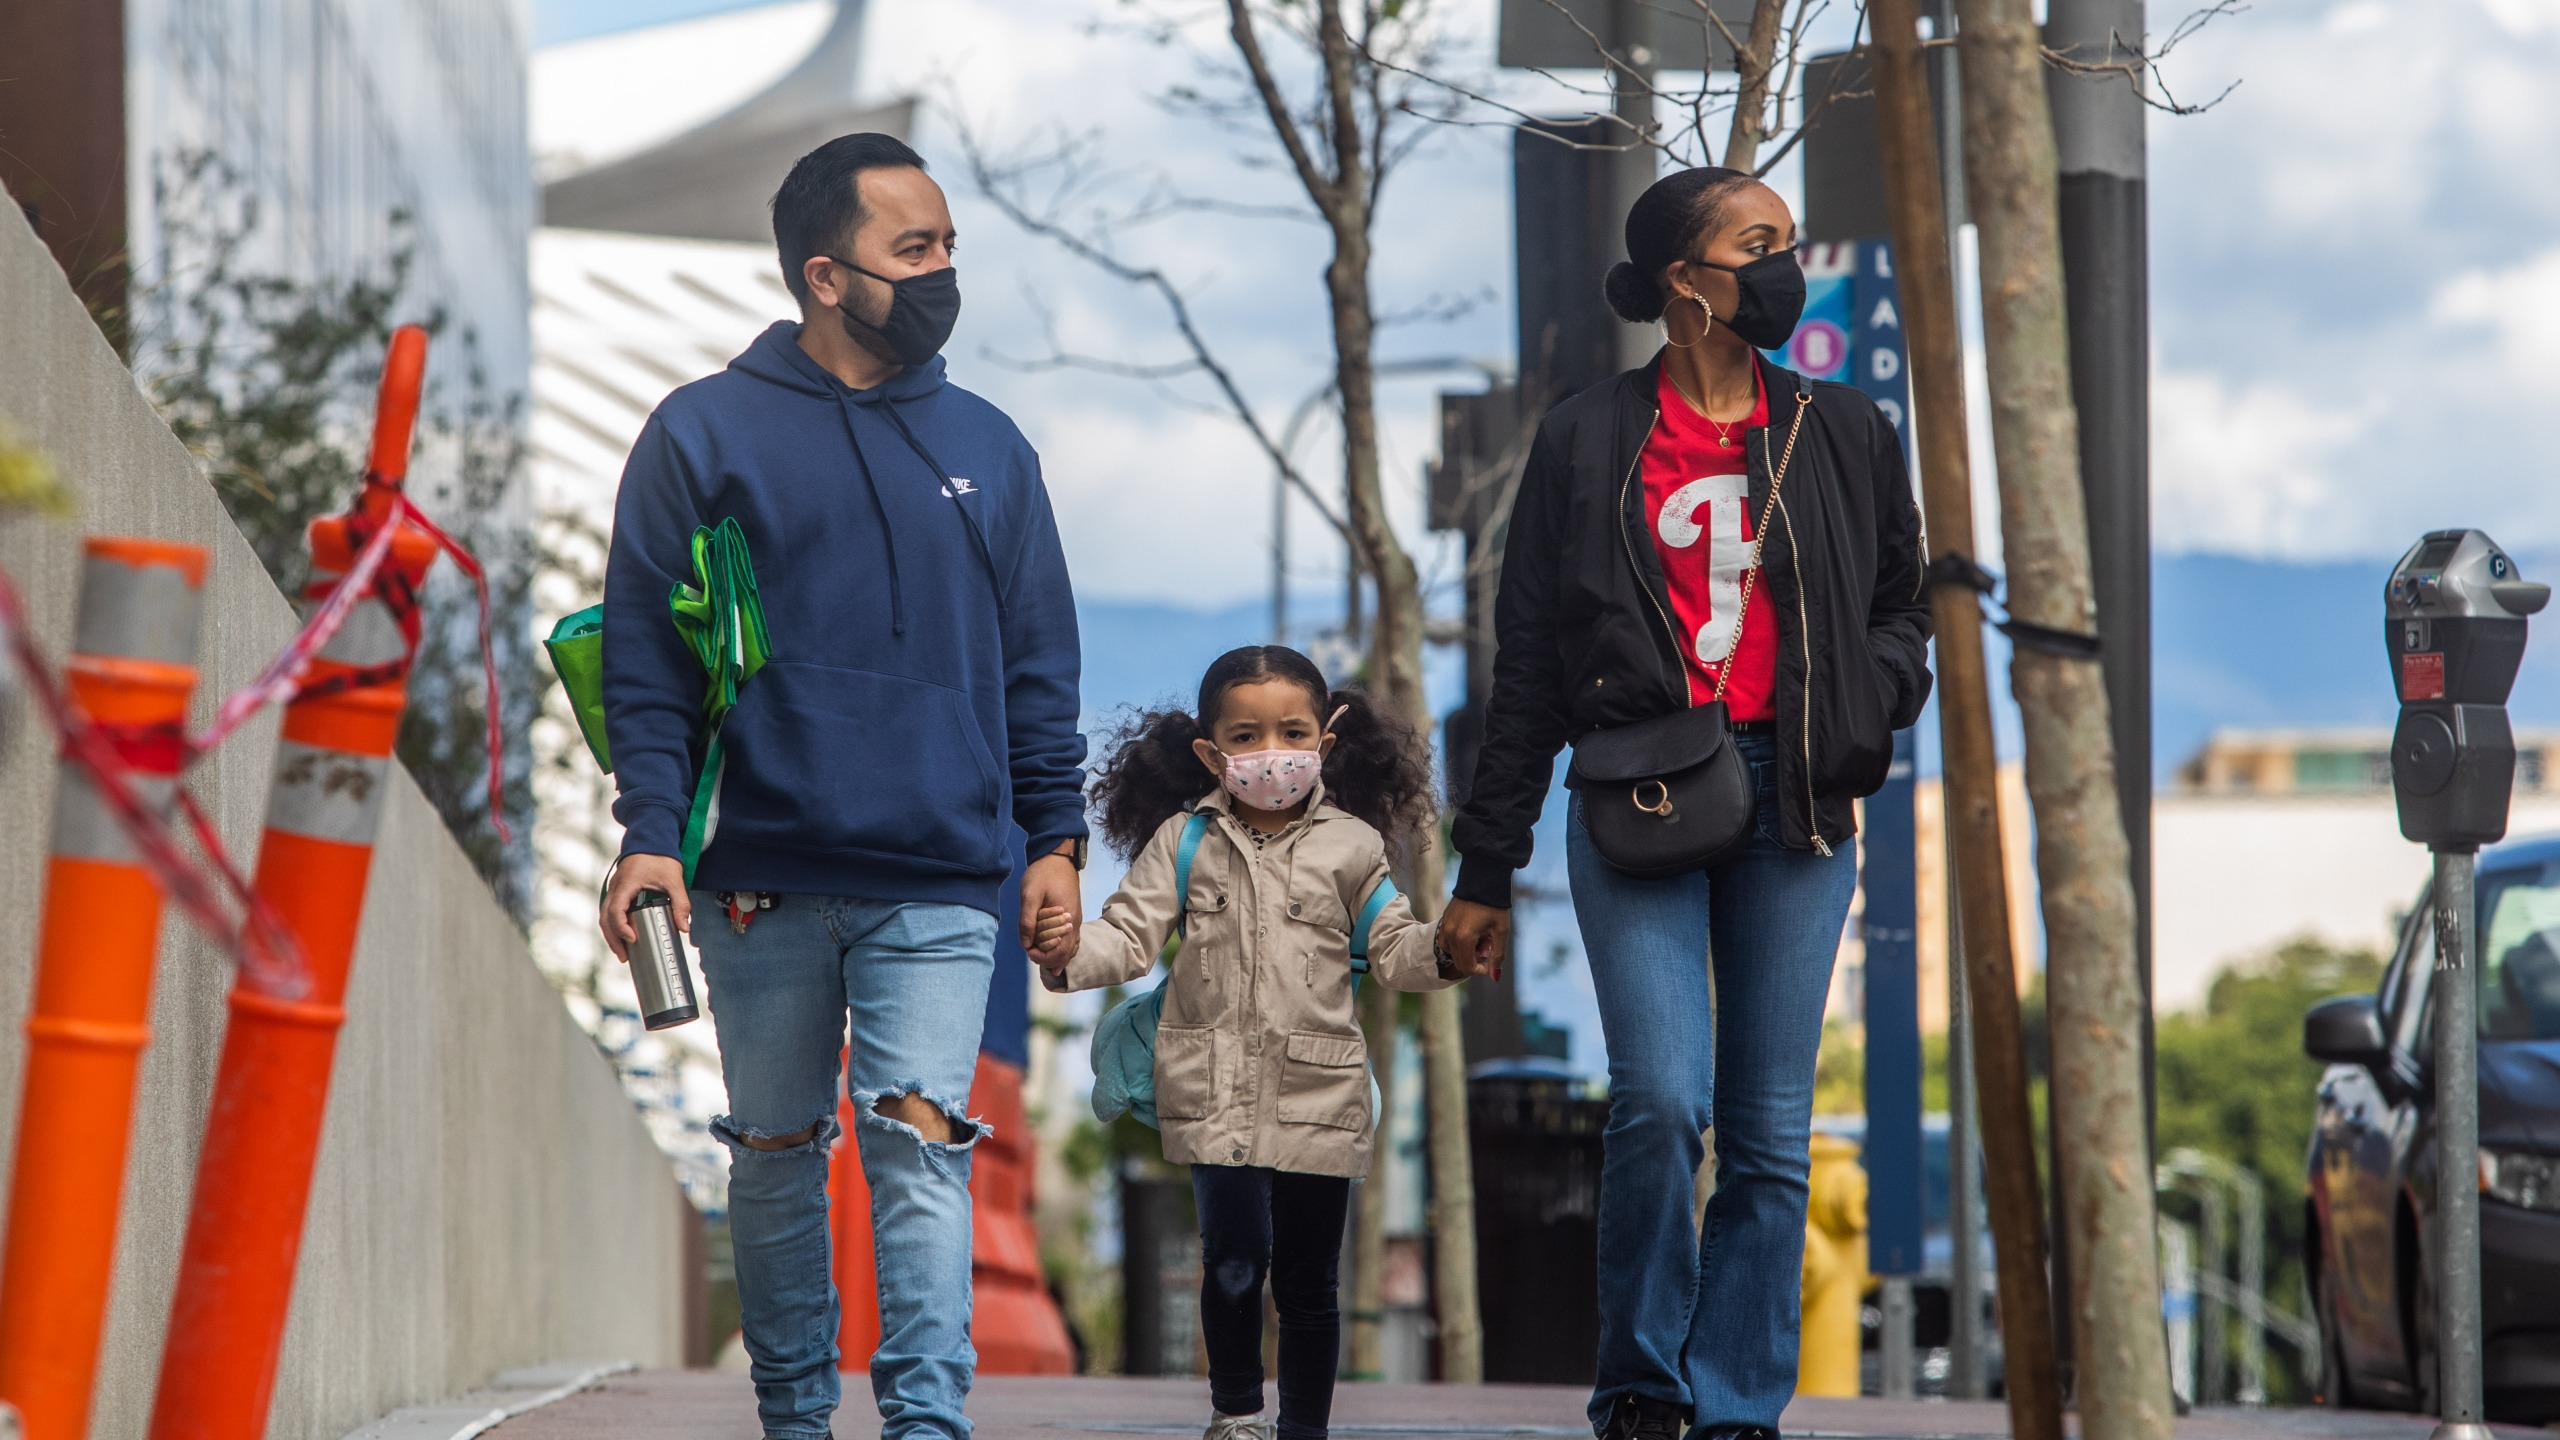 A family walks wearing masks in downtown Los Angeles on March 22, 2020, during the coronavirus outbreak. (APU GOMES/AFP via Getty Images)